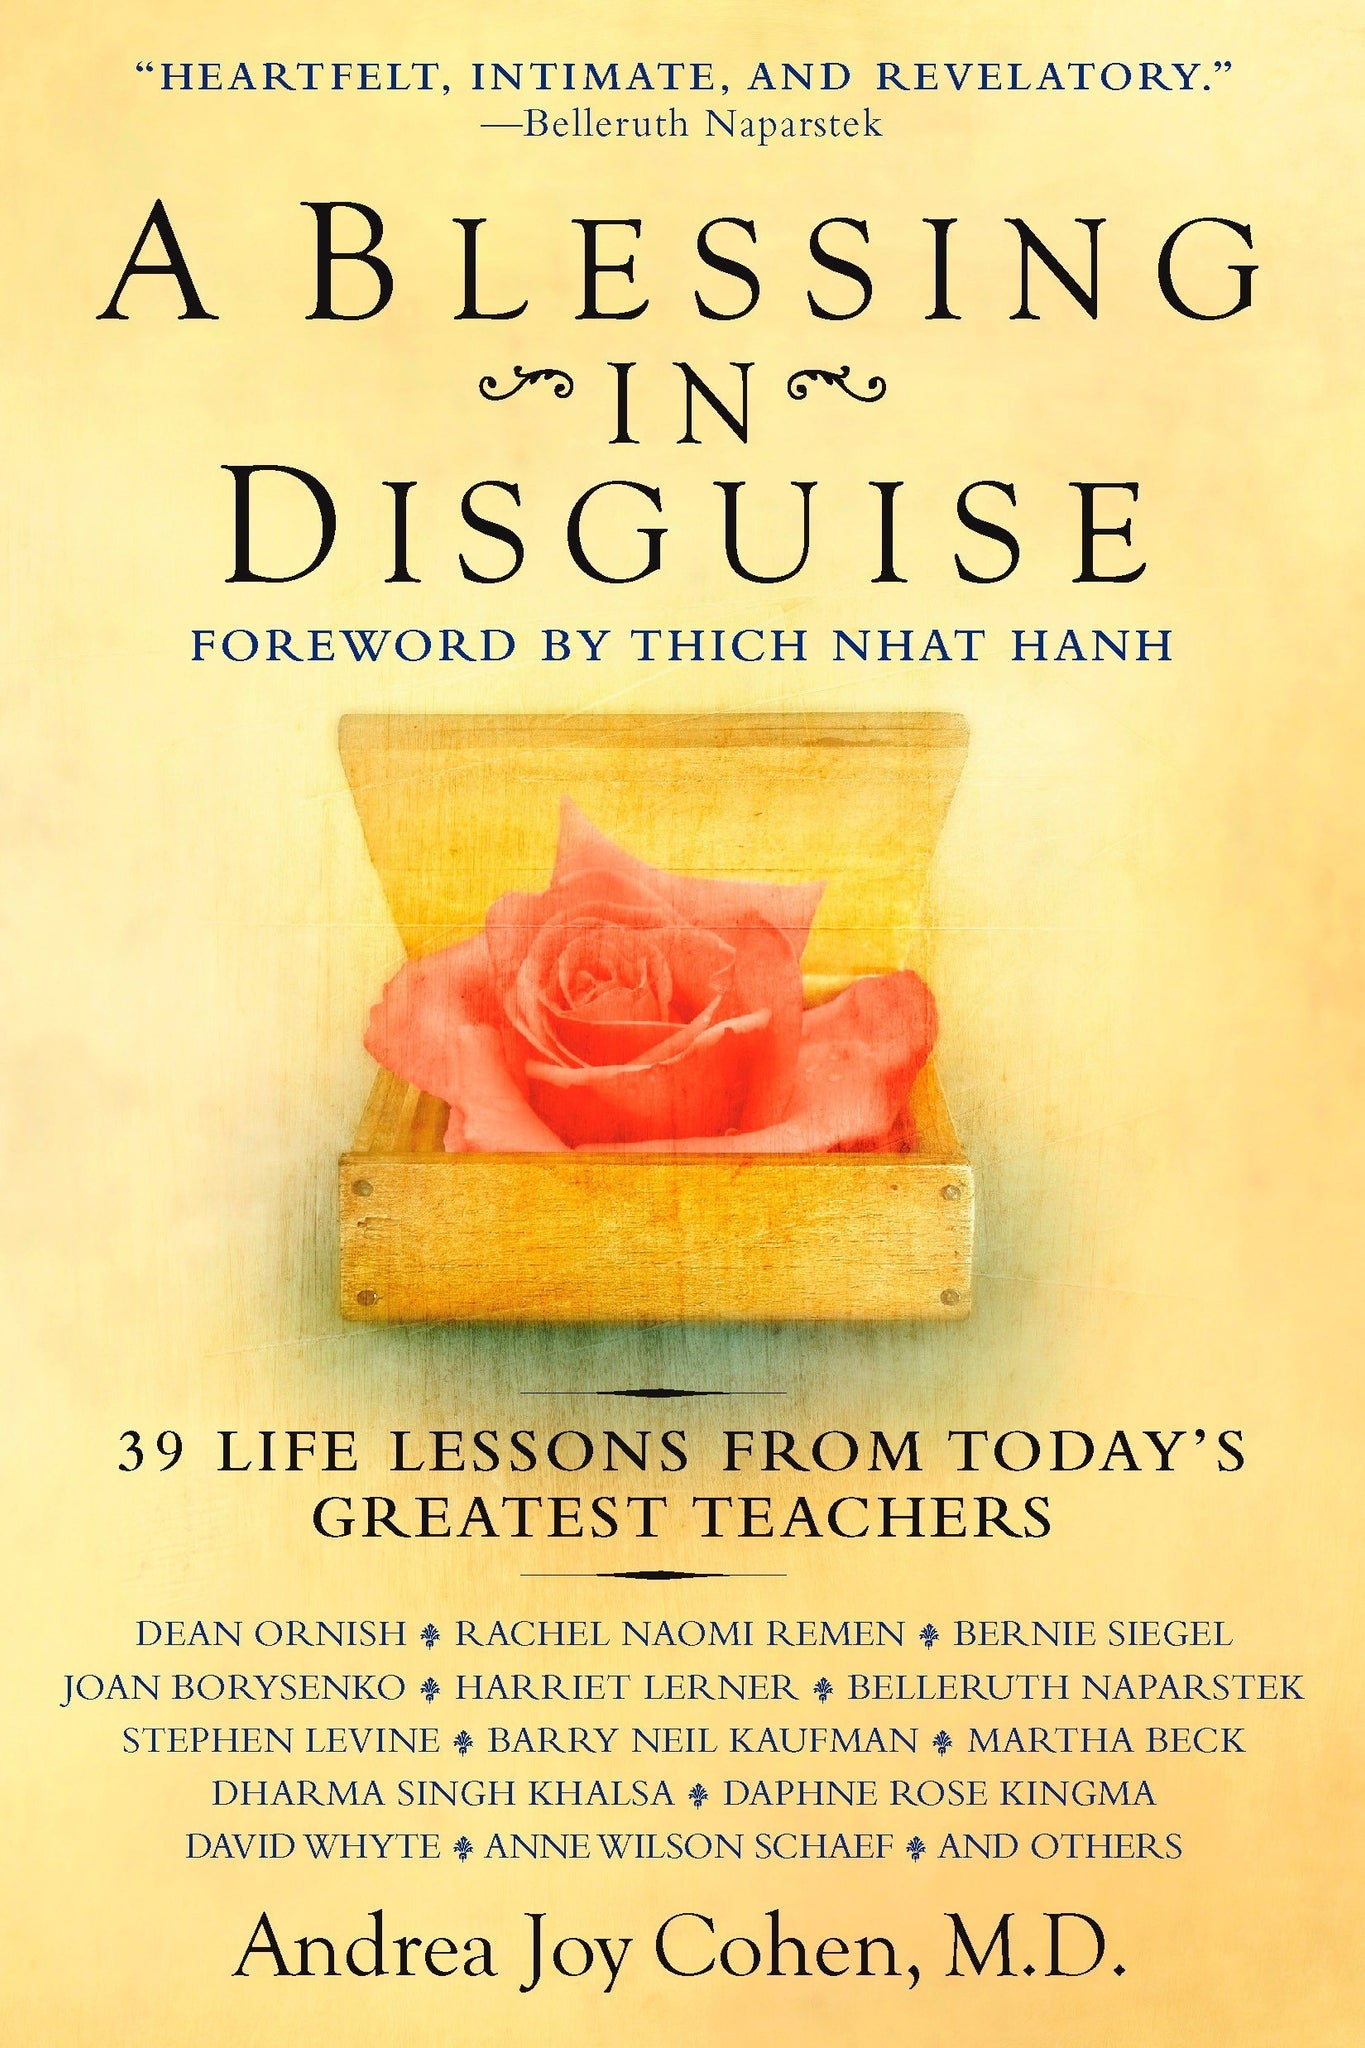 Livre ISBN 0425219666 A Blessing in Disguise: 39 Life Lessons from Today's Greatest Teachers (Andrea Joy Cohen M.D.)